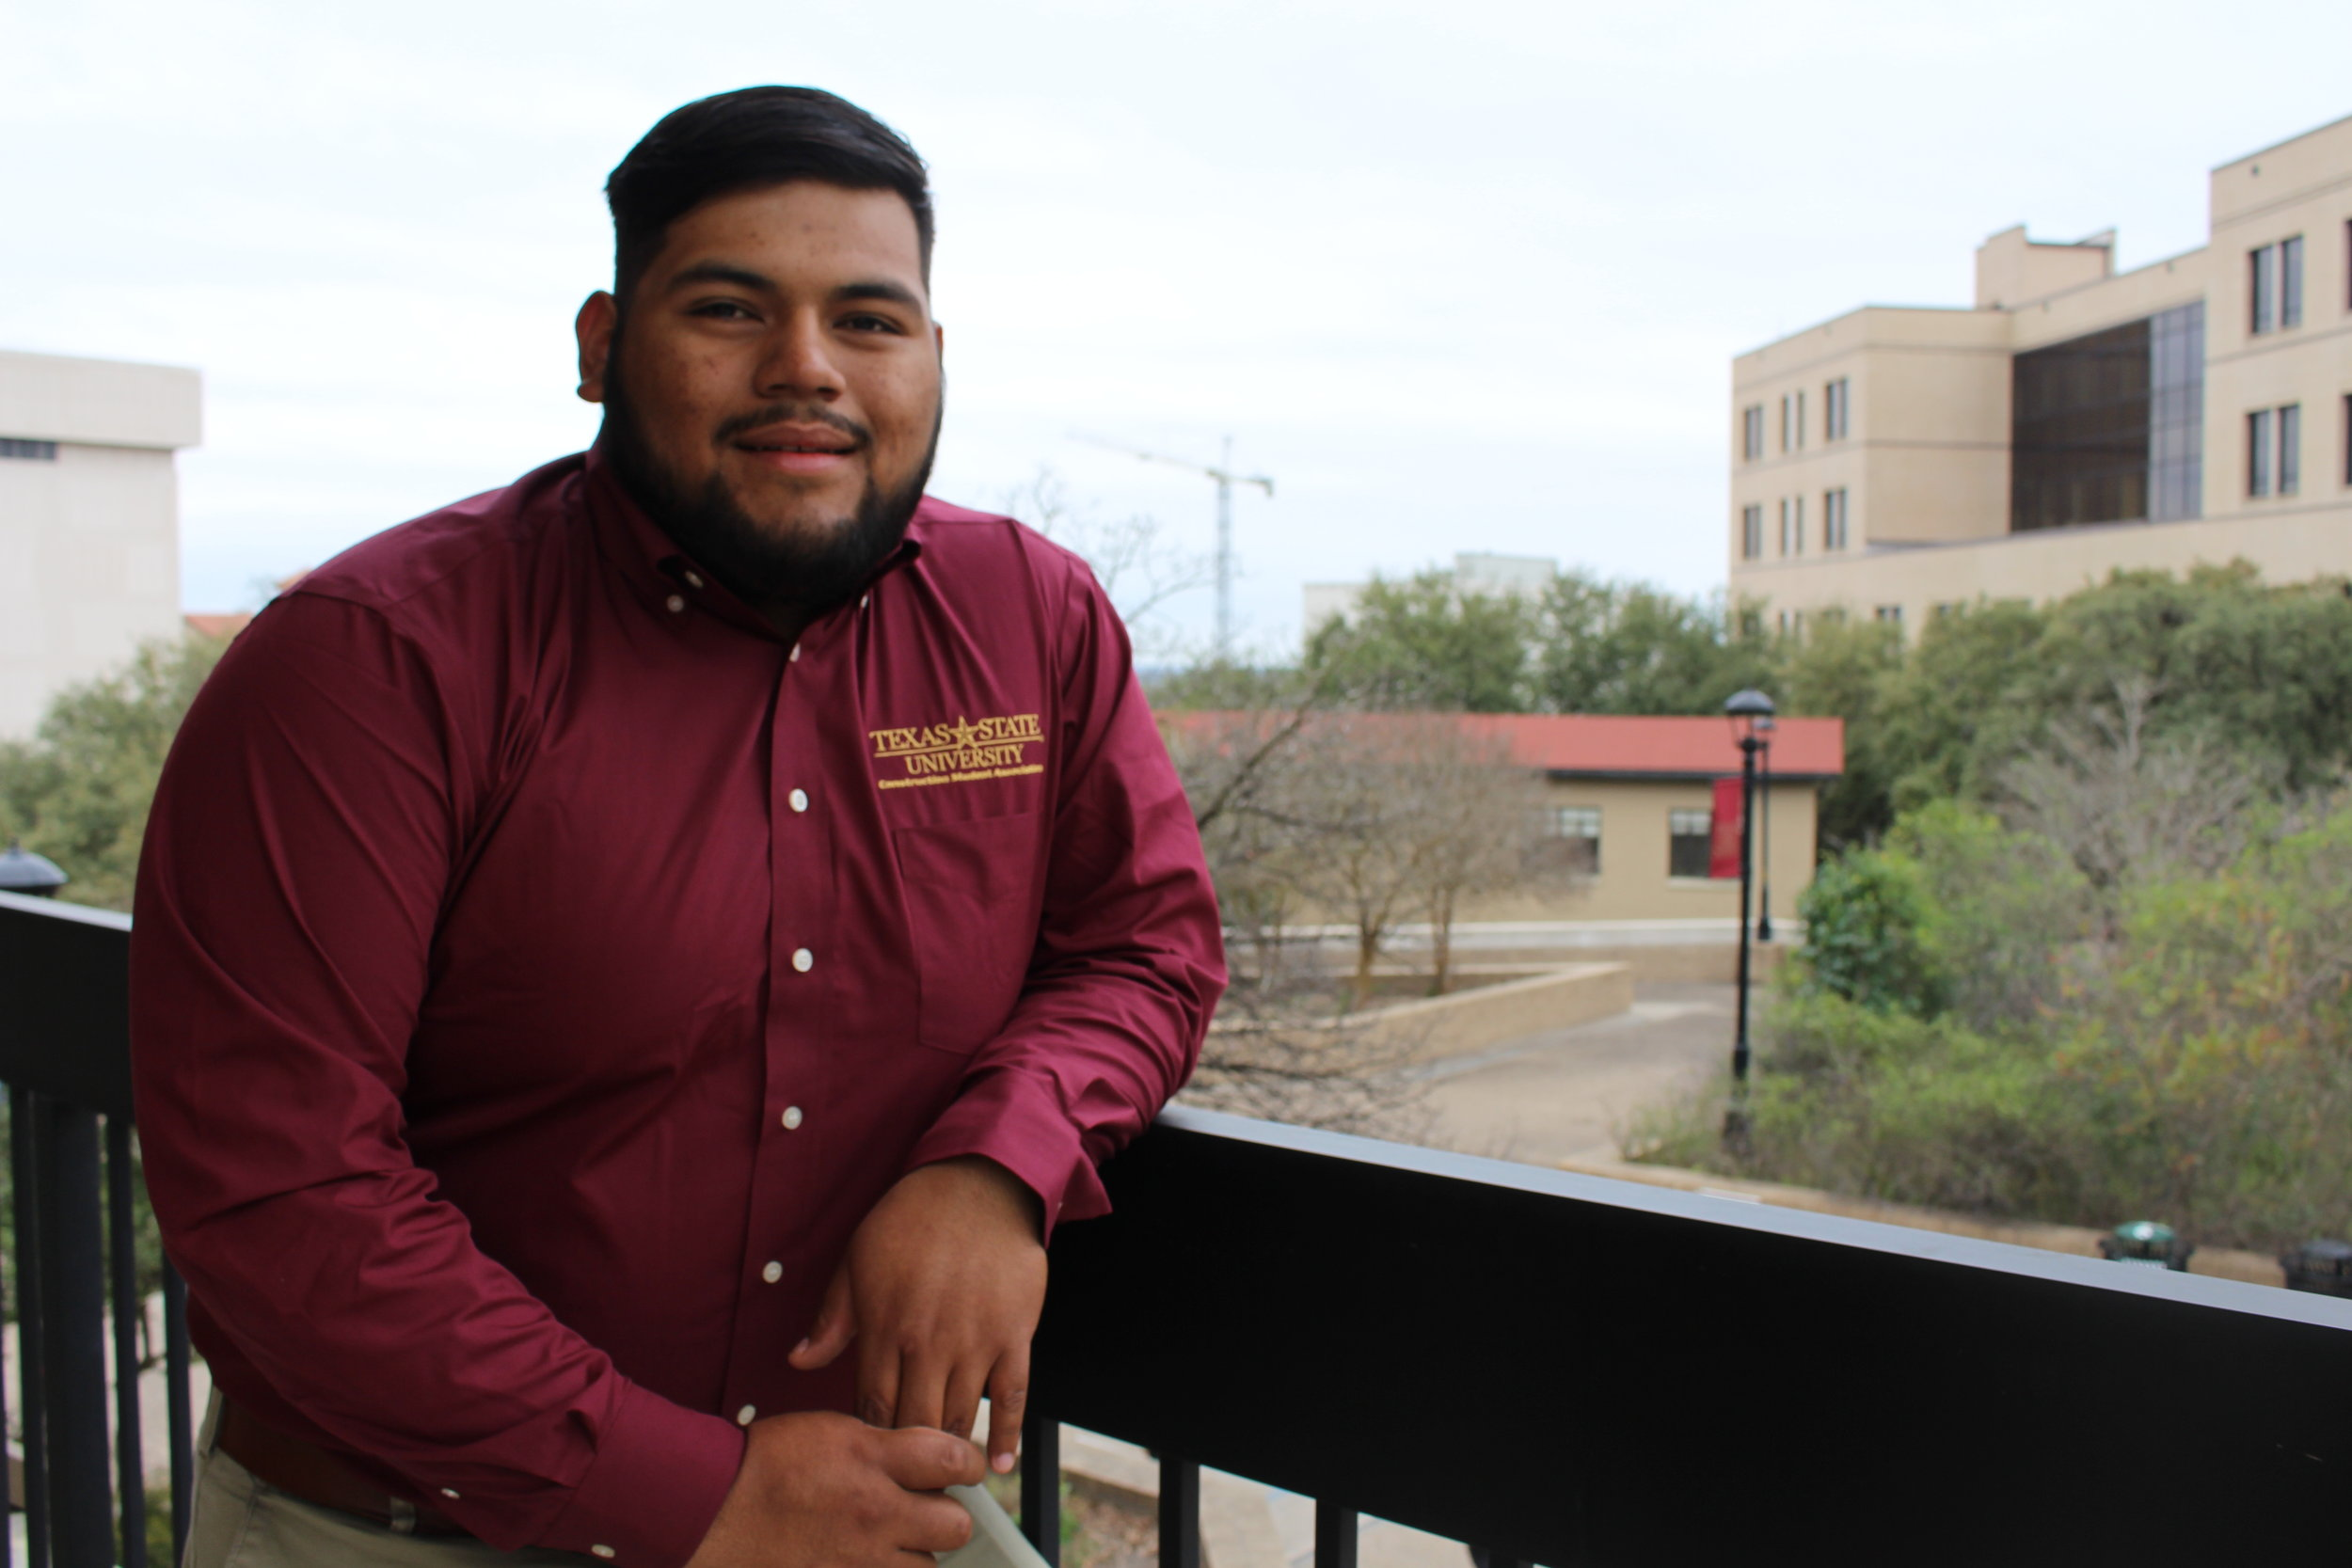 ABC Ambassador-Francisco Reyes - Hometown: Waller, TexasGraduation: May 2020Field of Interest: CommercialPast Experience: Bartlett Cocke Internship & current employee, McCarthy Internship.Tasks: Responsible for maintaining a relationship between Students and ABC. In charge of organizing meetings, events, and volunteering opportunities throughout the semester.Contact: fjr23@txstate.edu